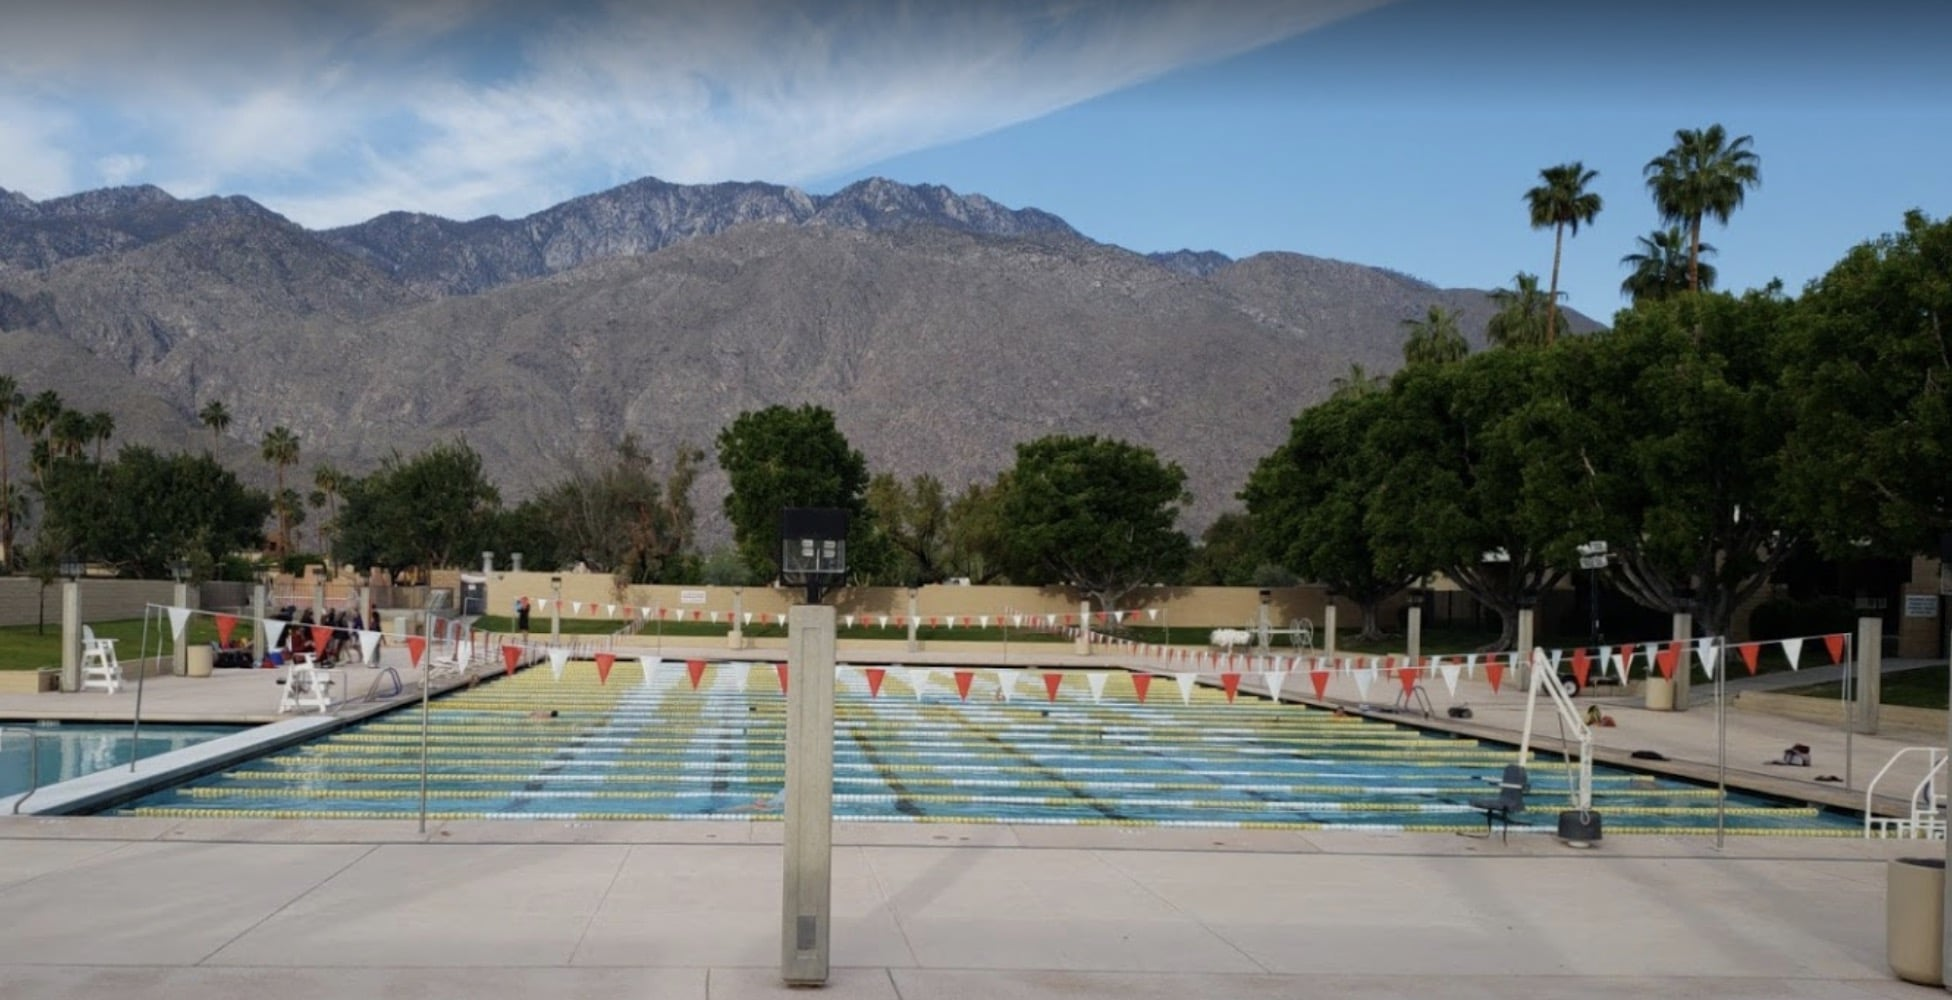 Palm Springs High water polo players \'mortified\' by \'naked man ...